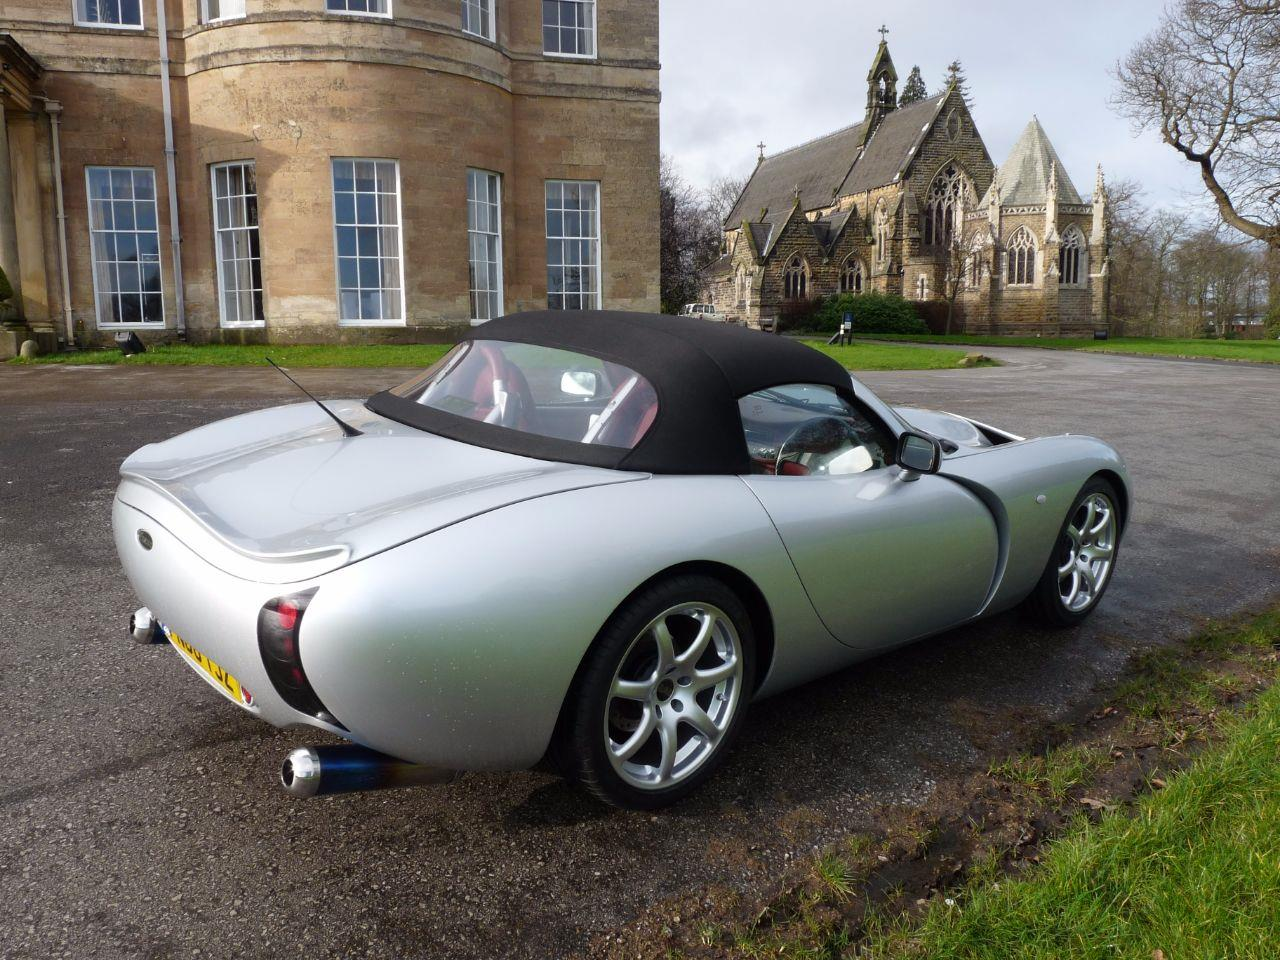 Tvr convertible photo - 3